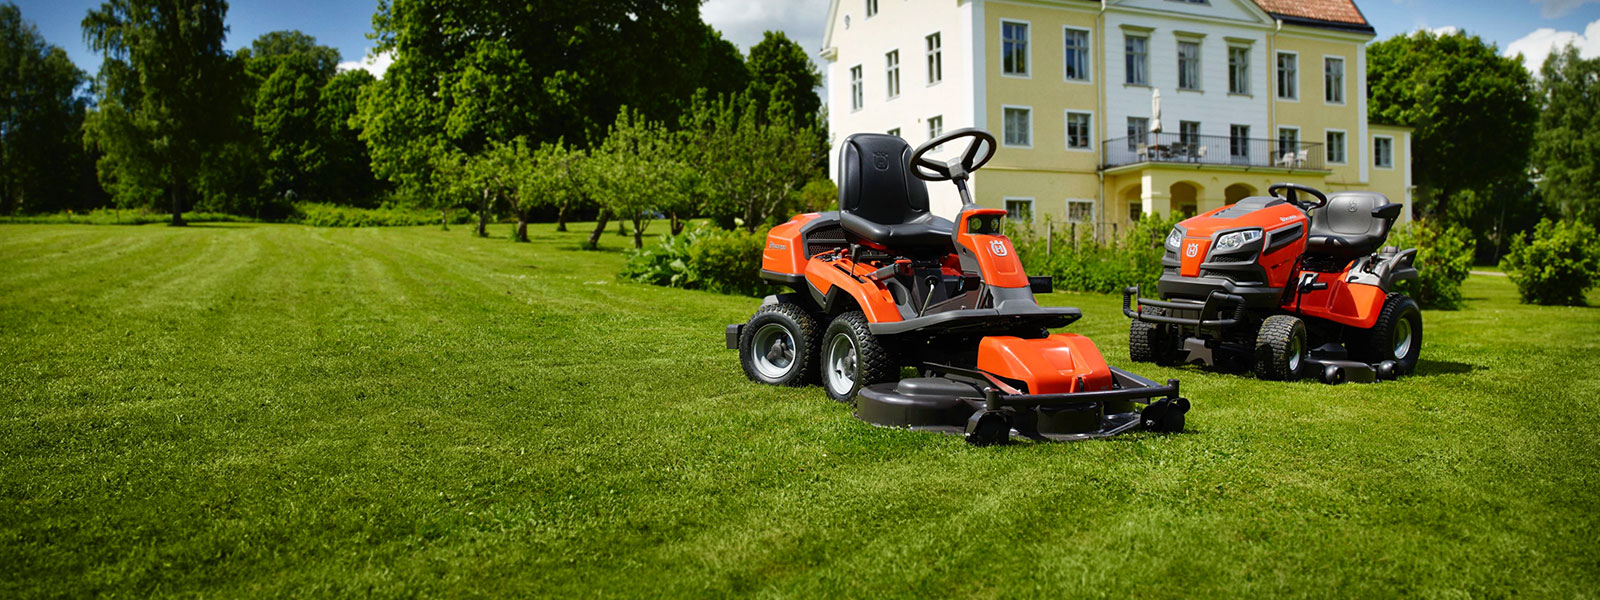 Lawnmowers by LGM